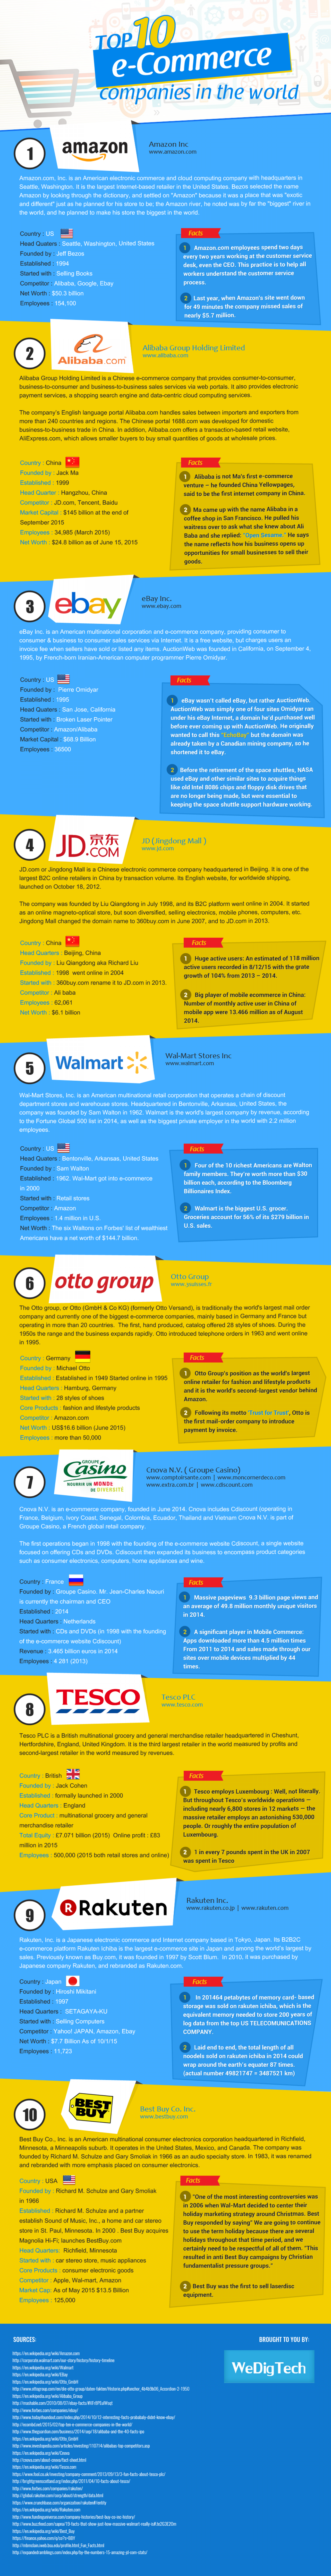 top-10-ecommerce-companies-in-the-world